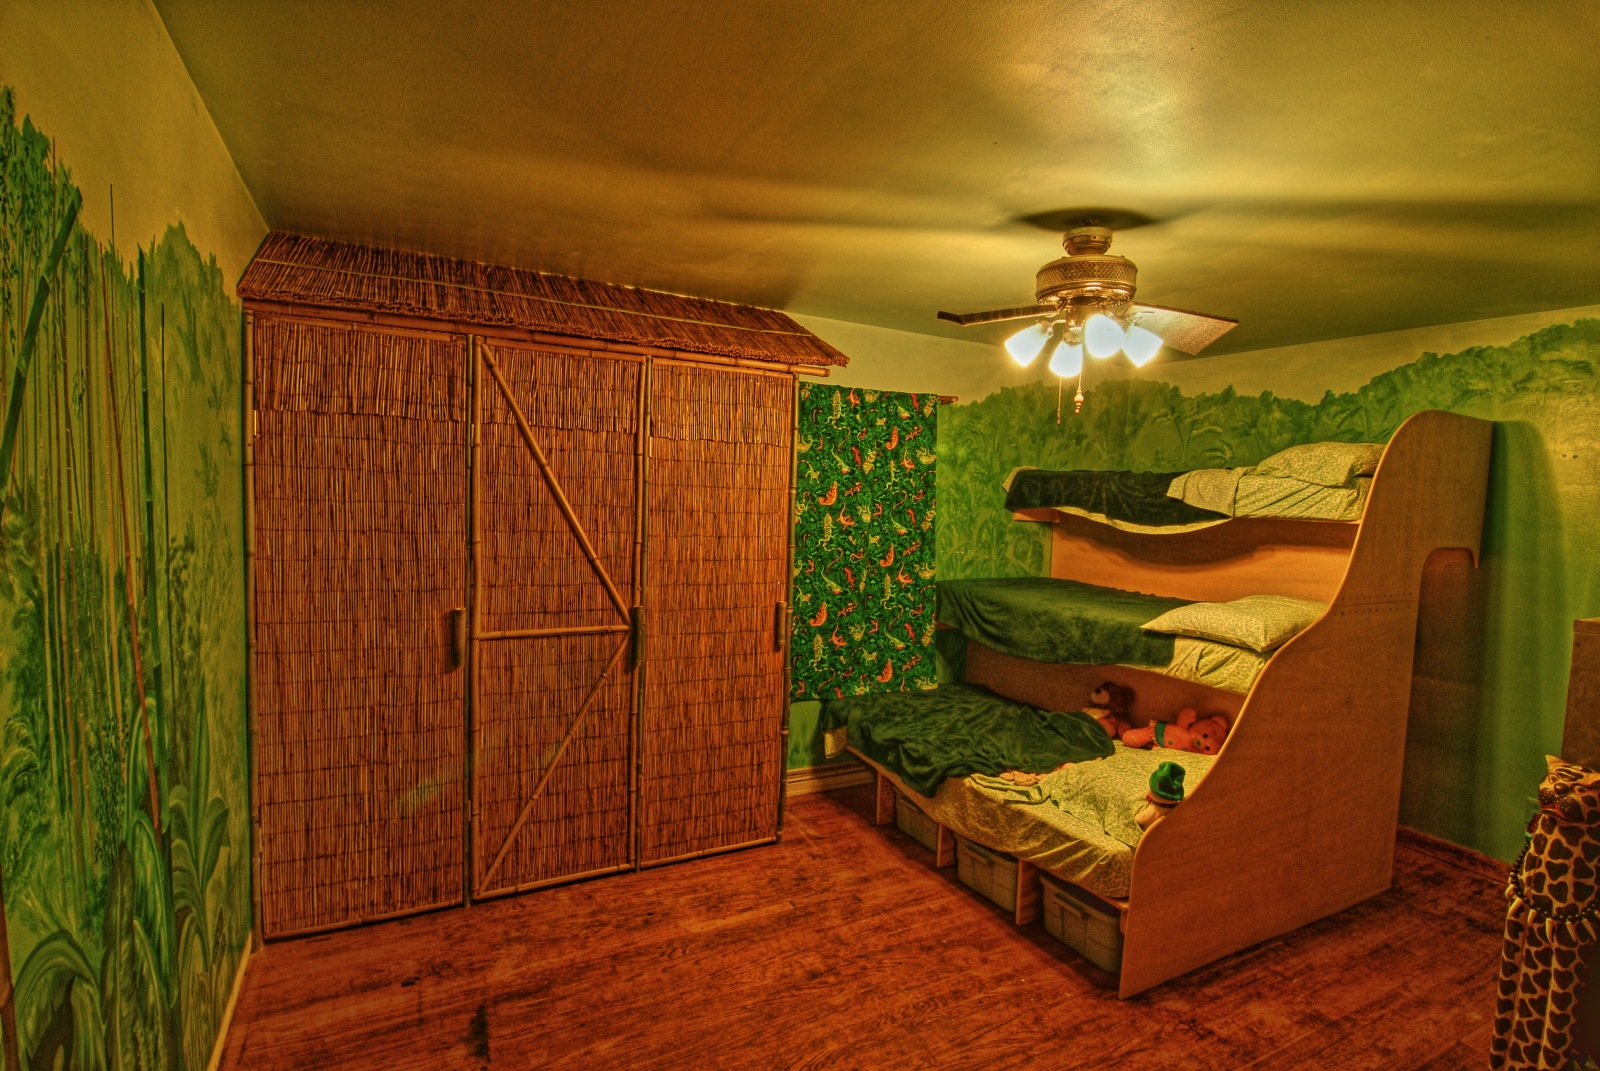 rainforest bedroom ideas best bedroom 2017 bedroom kids cool rainforest childrens room kids room great 9 jungle theme